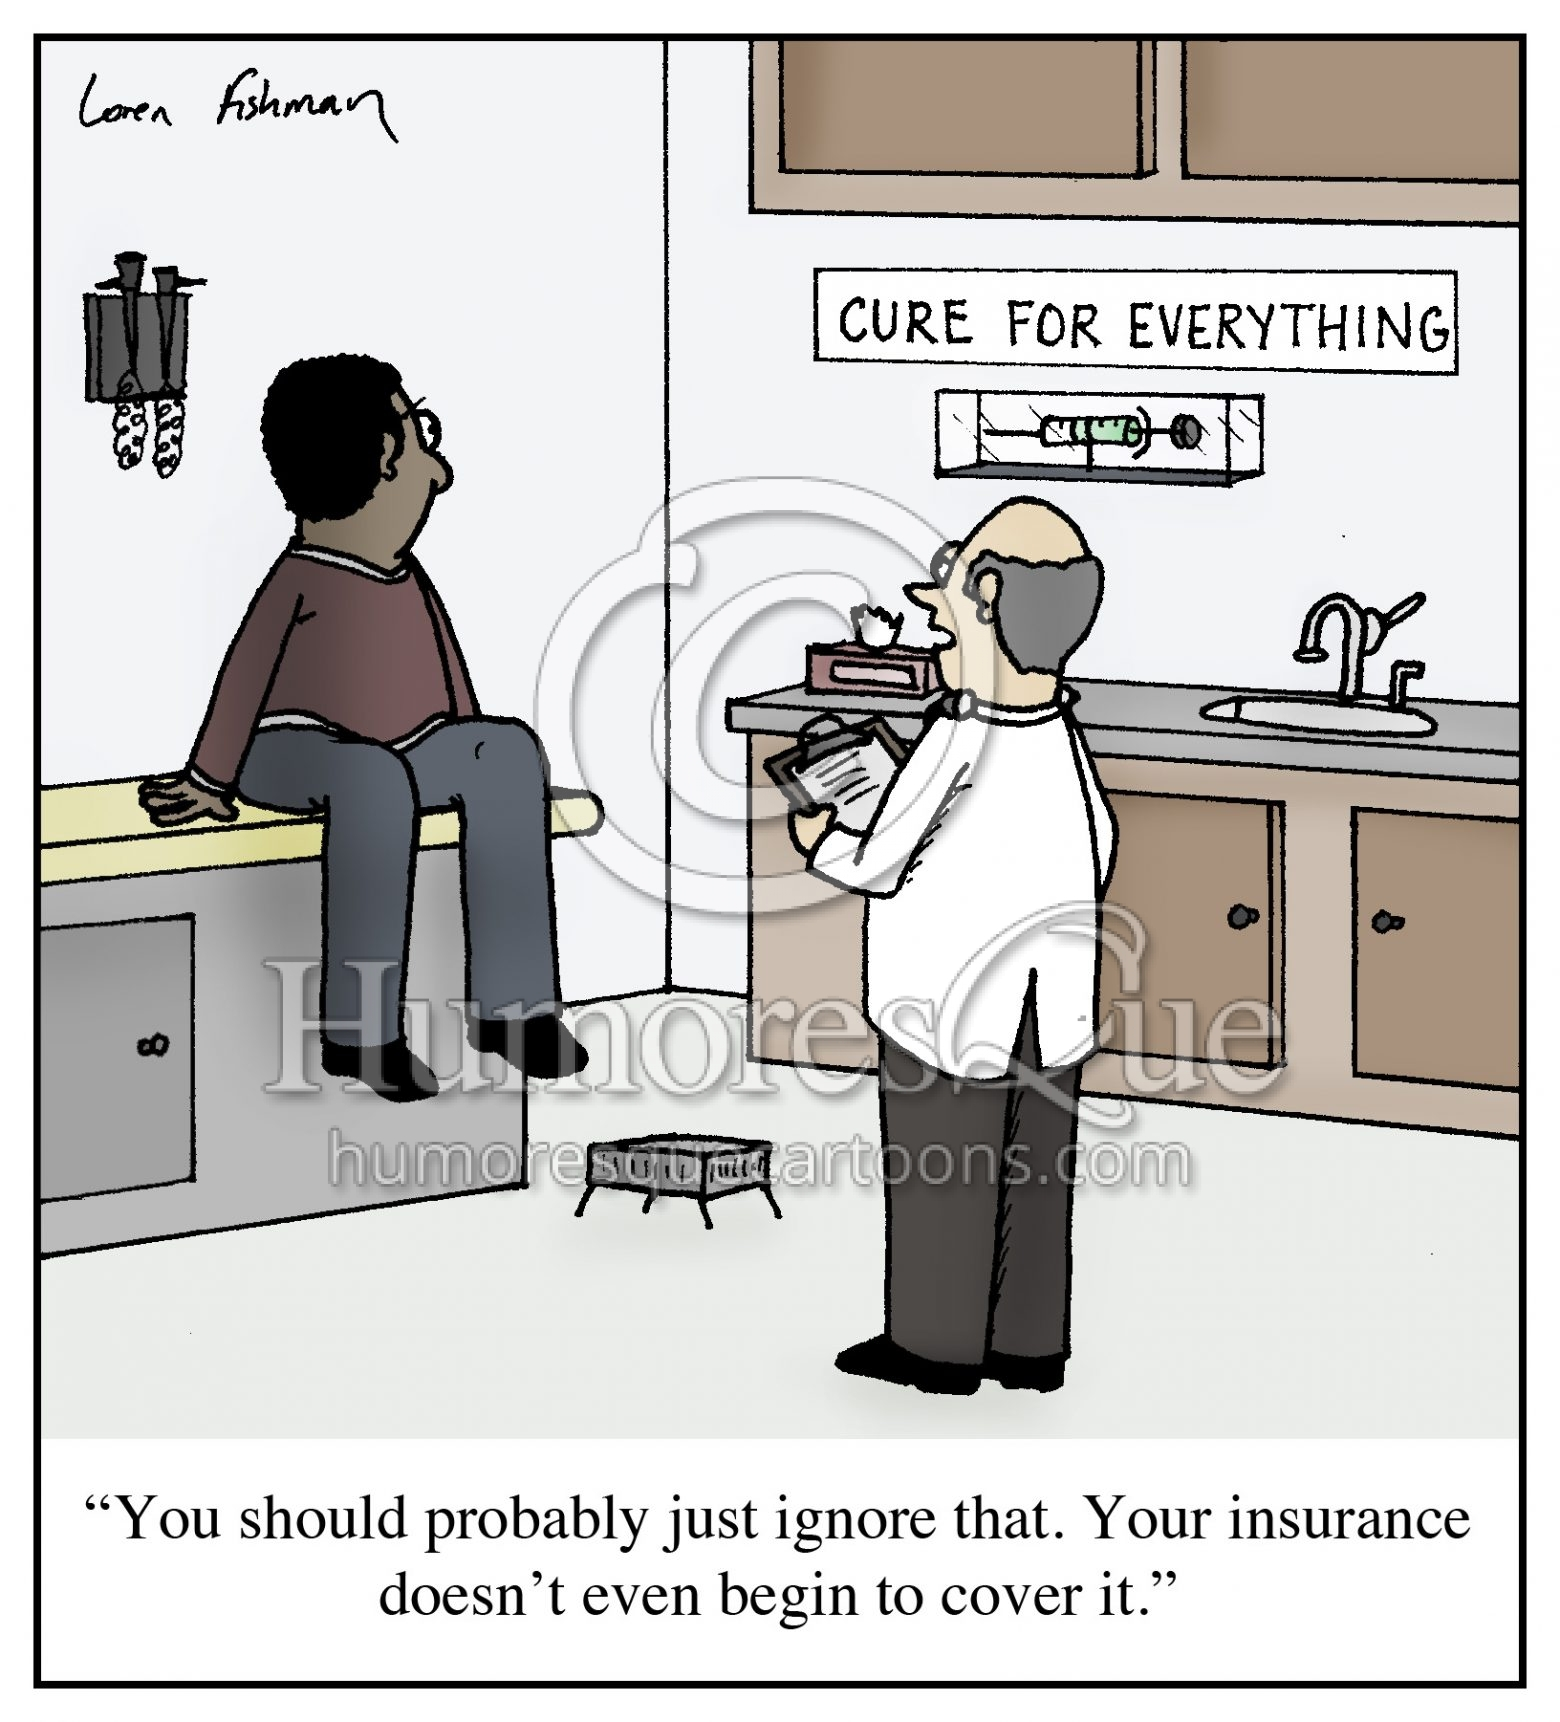 cure for everything doctors and insurance provider cartoon